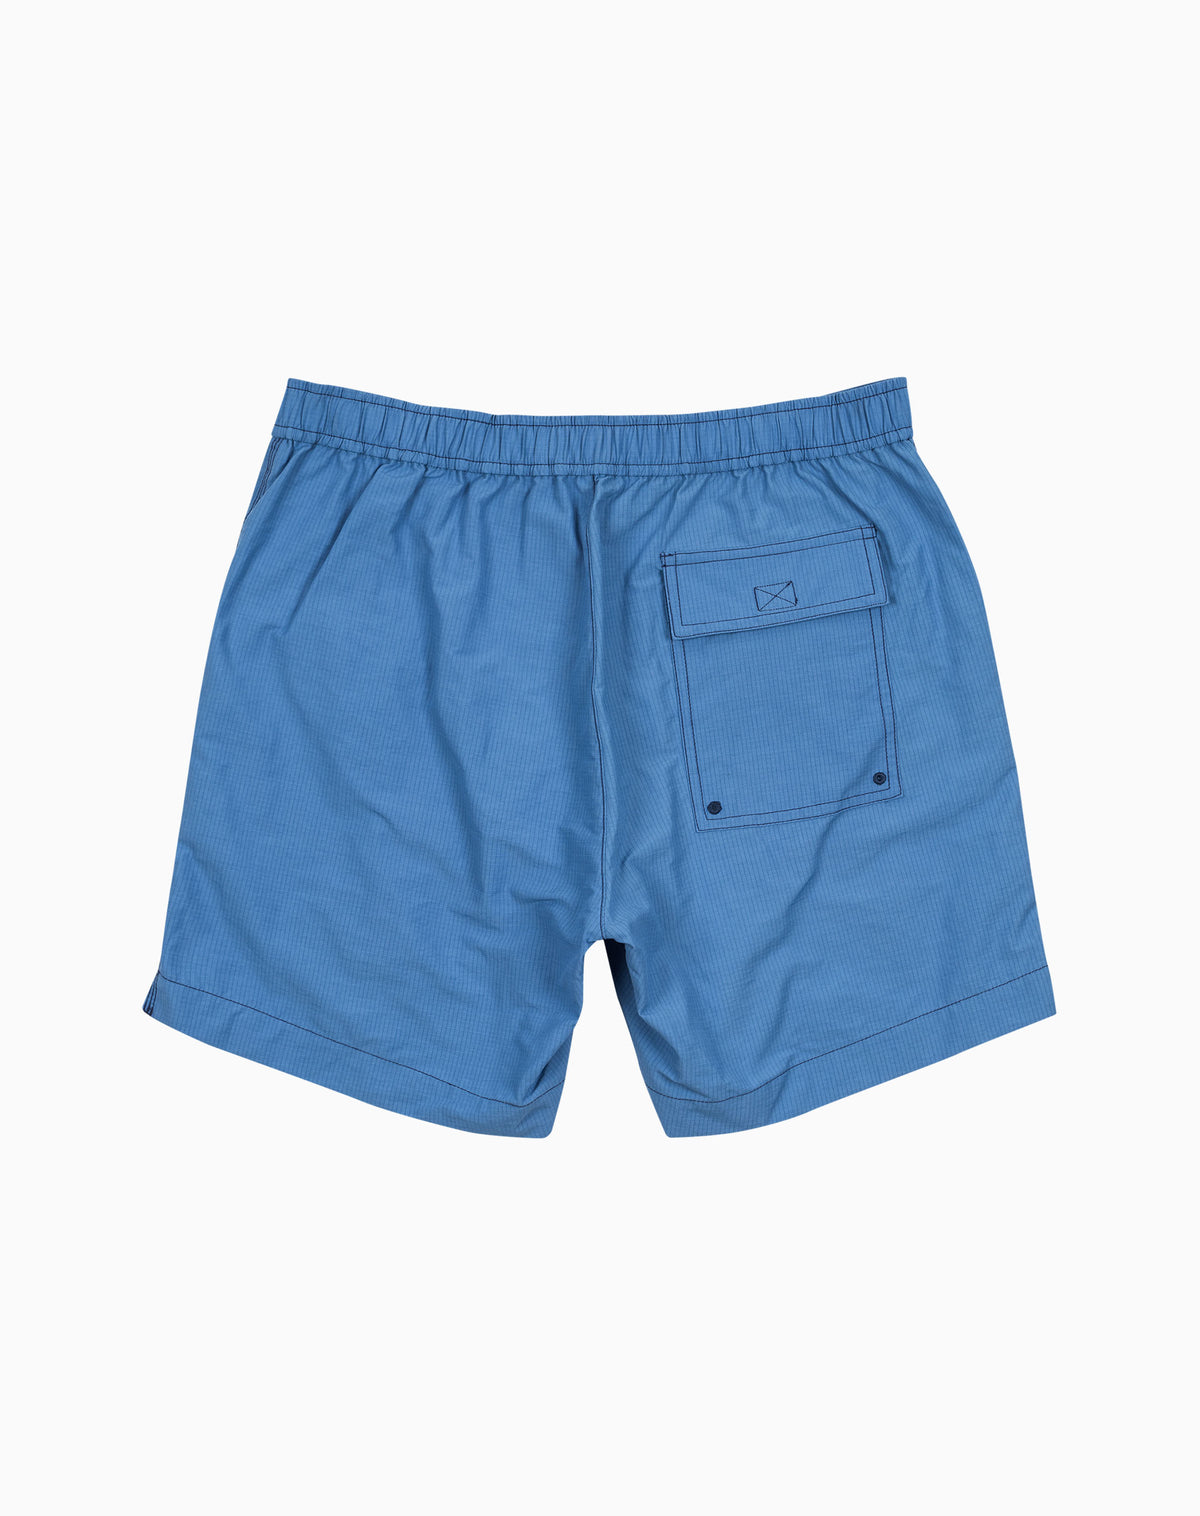 Wavy Utility Trunk in Mid-Blue